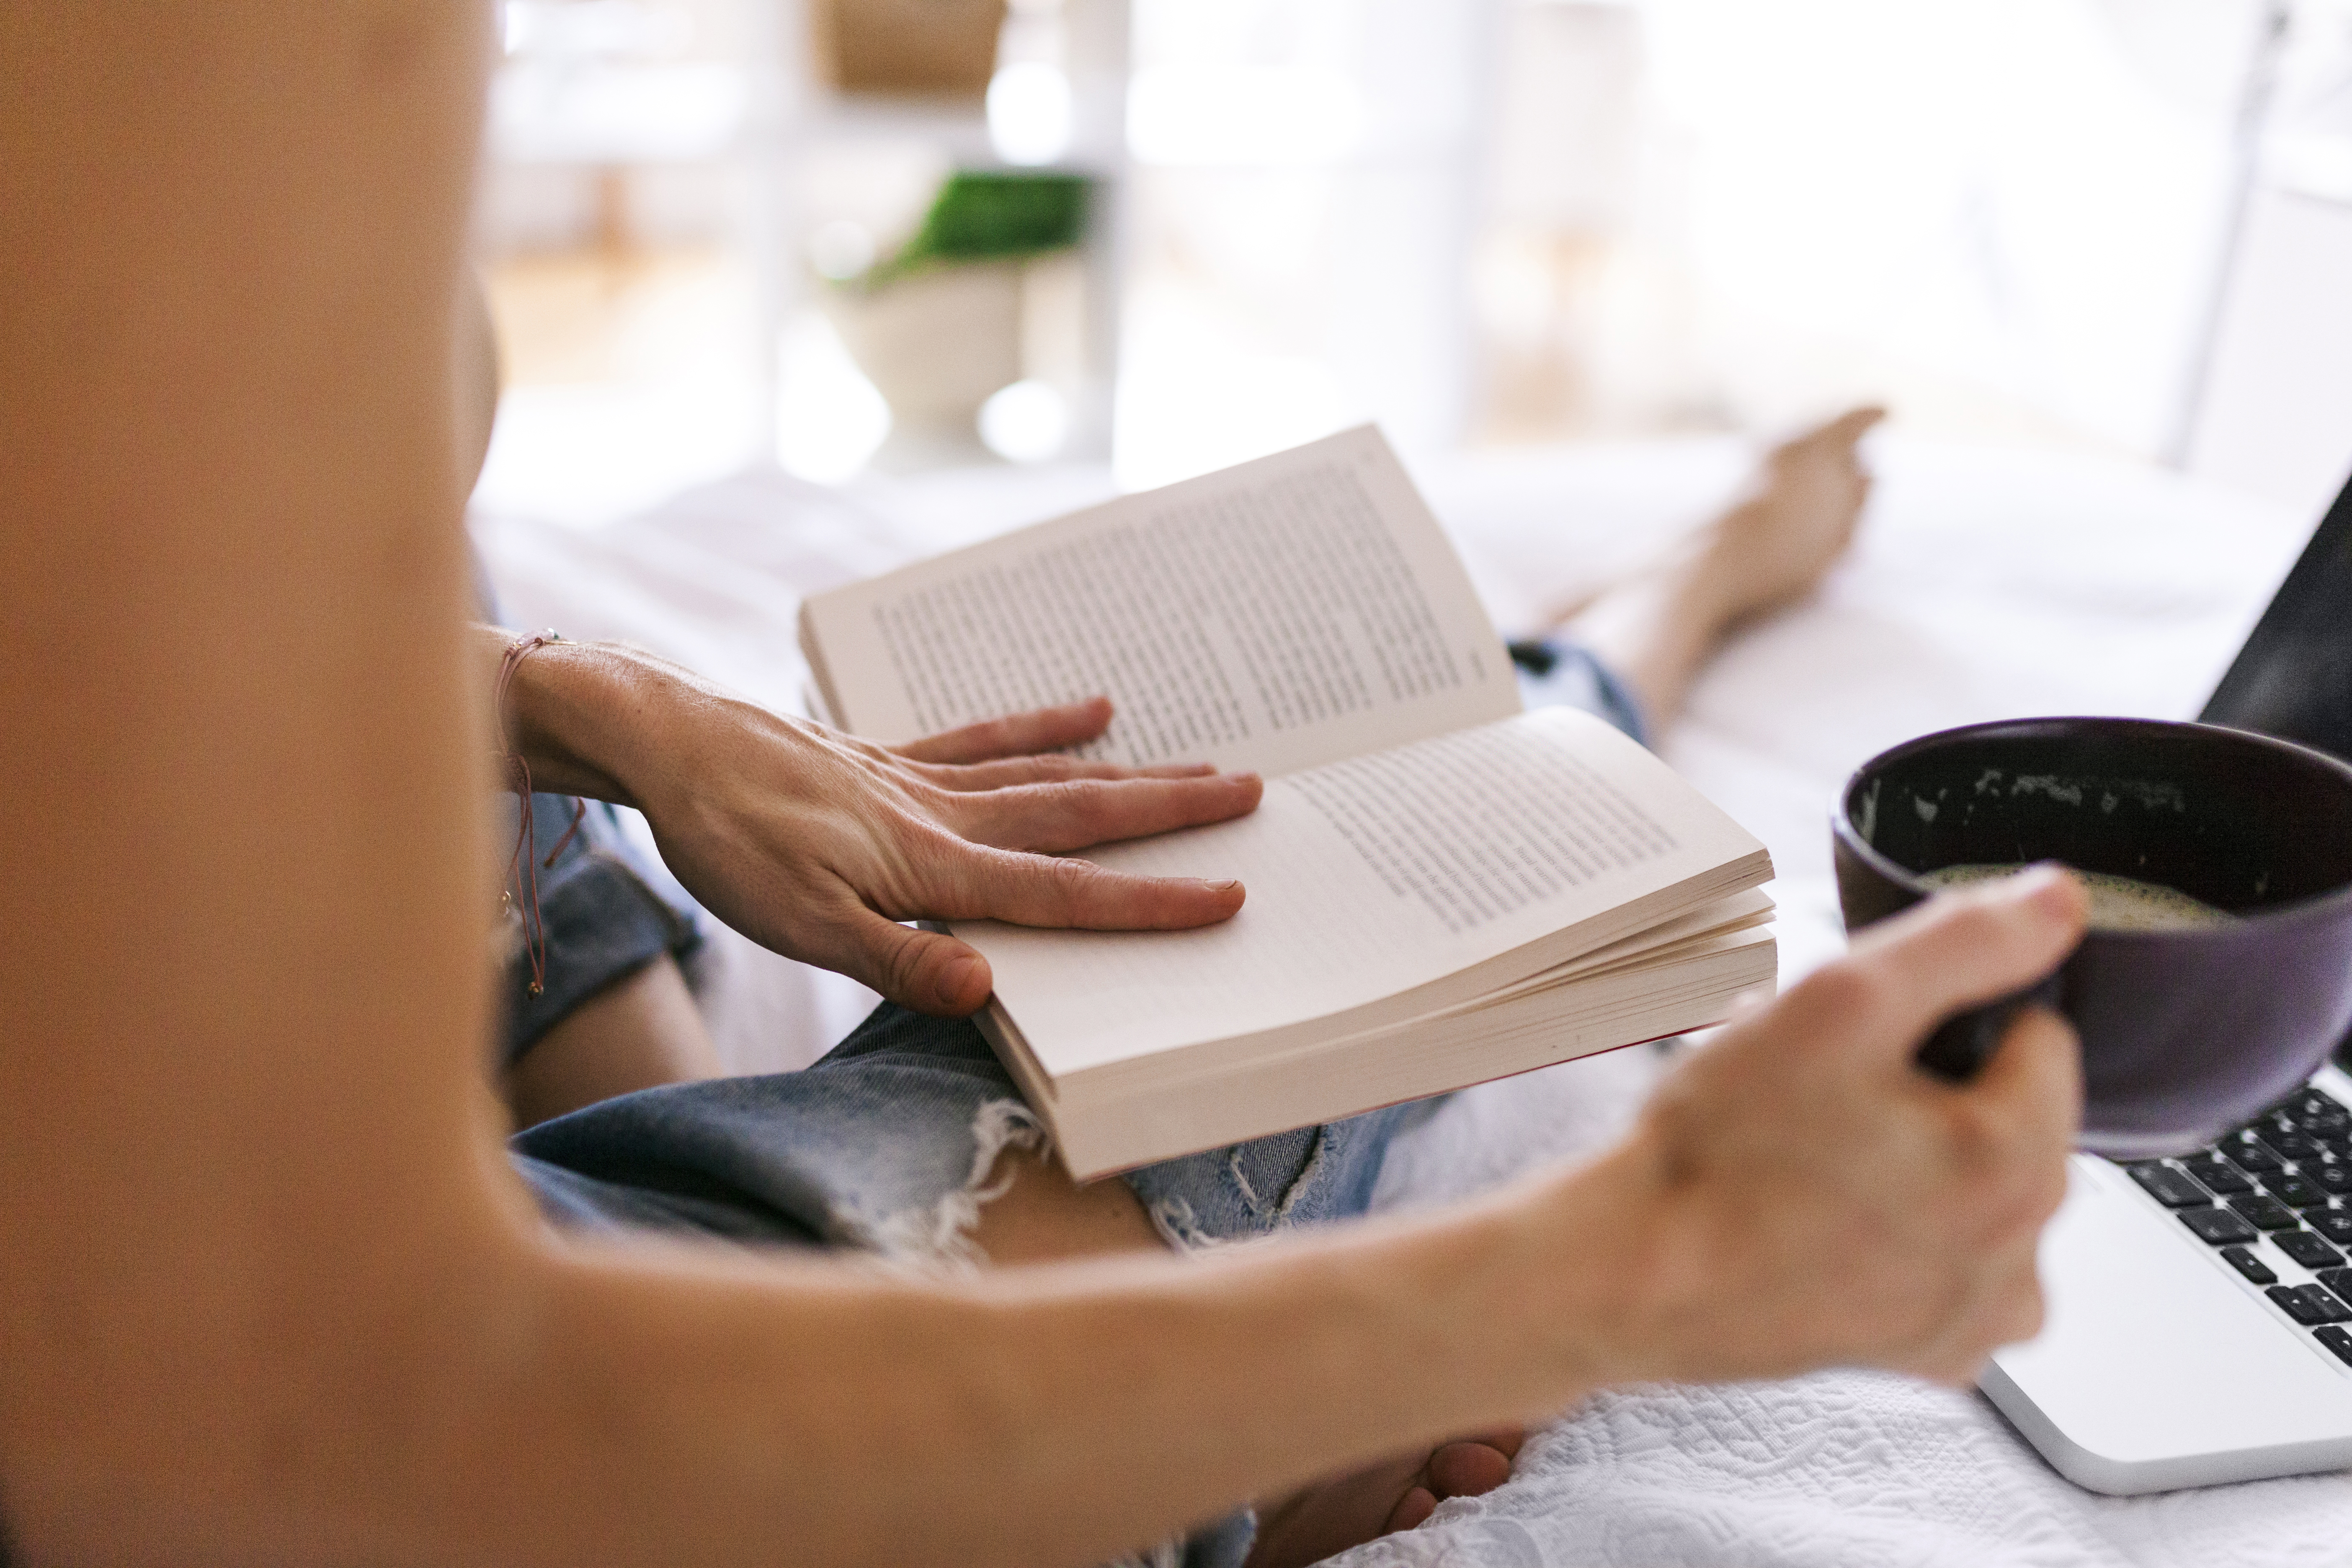 Woman sitting on bed drinking coffee, using laptop and reading book, close up